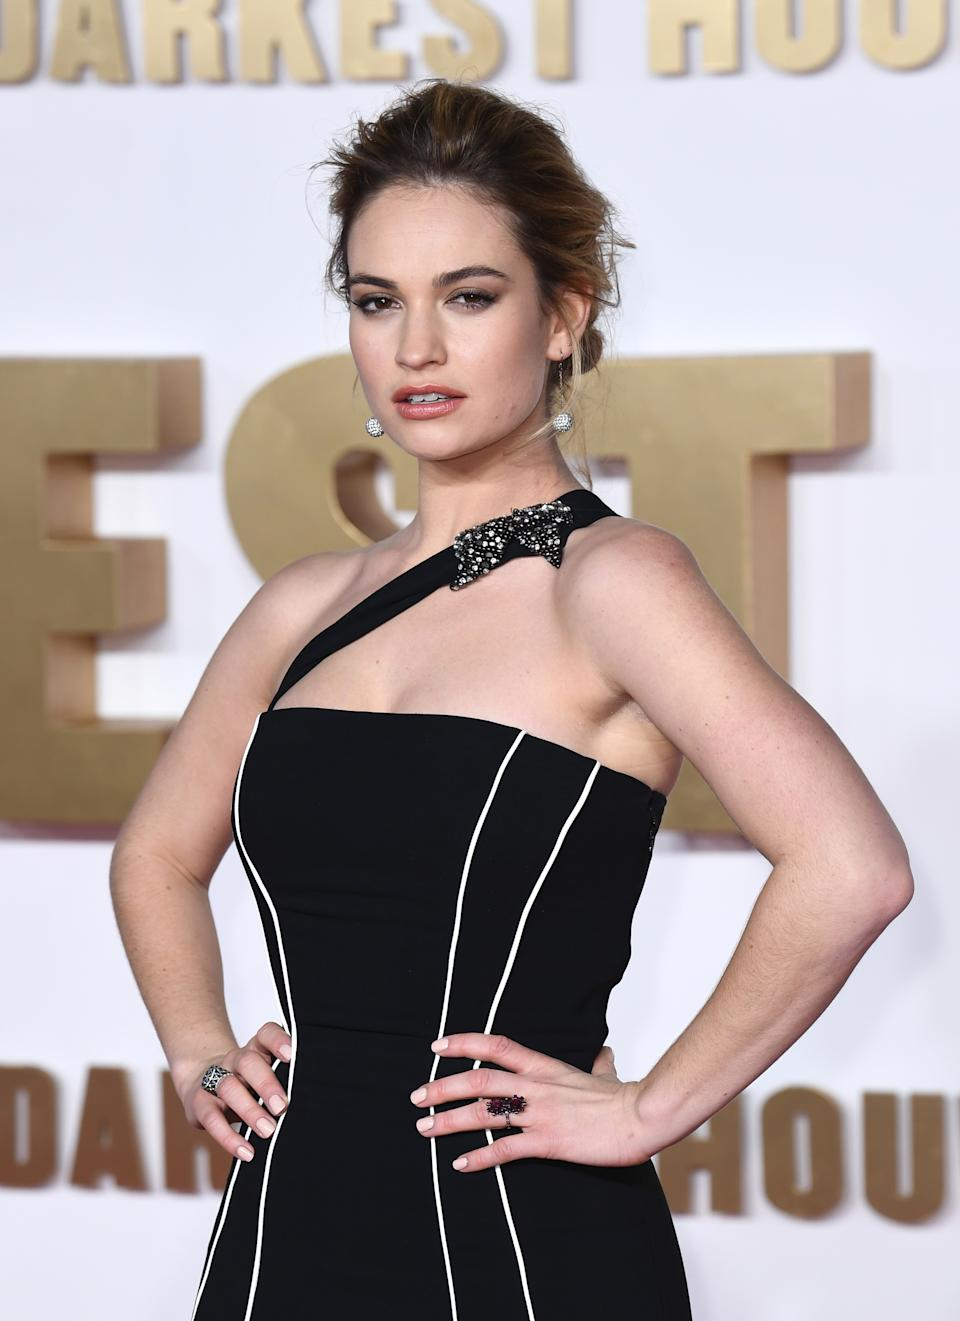 Lily James attending the Darkest Hour Premiere held at the Odeon, Leicester Square, London. Picture Credit Should Read: Doug Peters/EMPICS Entertainment